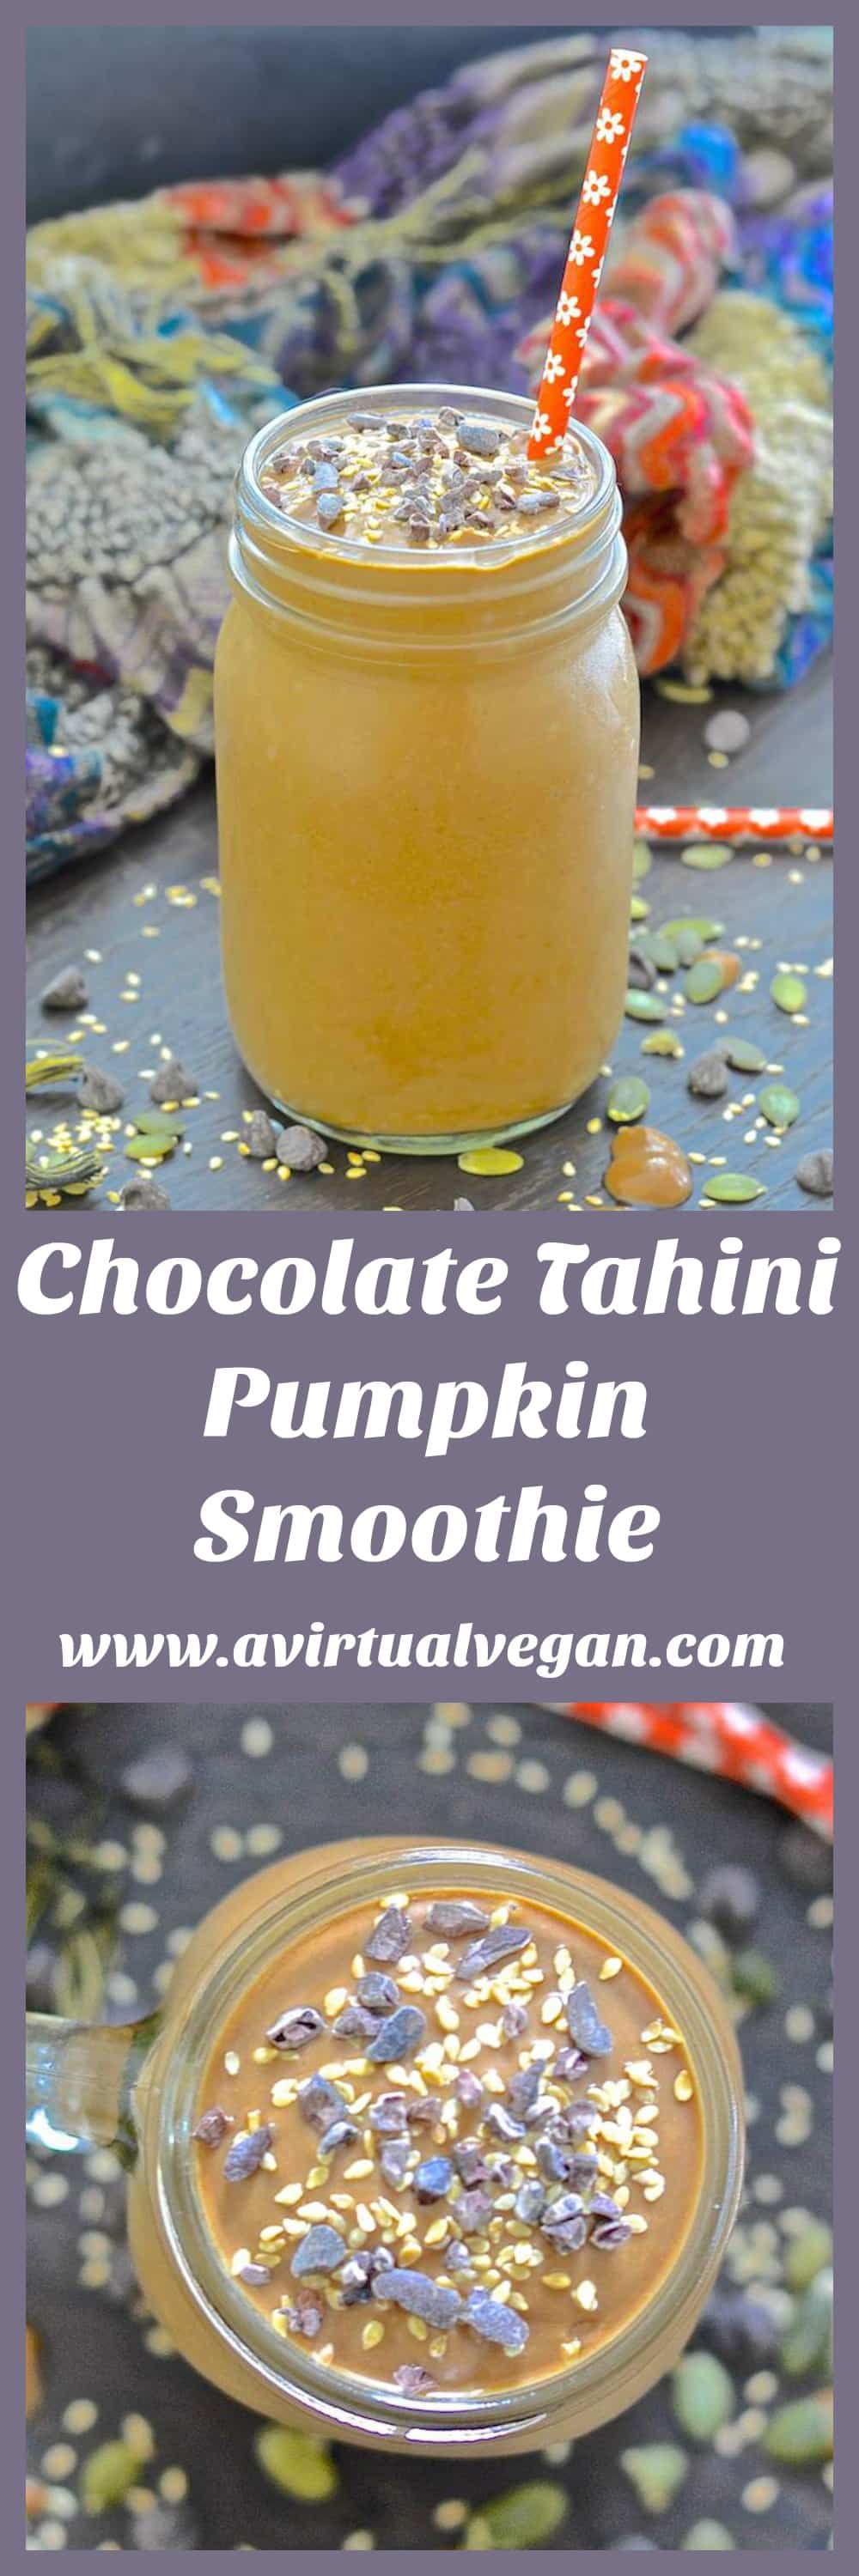 Set yourself up for the day with this velvety smooth, creamy, thick & incredibly delicious Chocolate Tahini Pumpkin Smoothie.